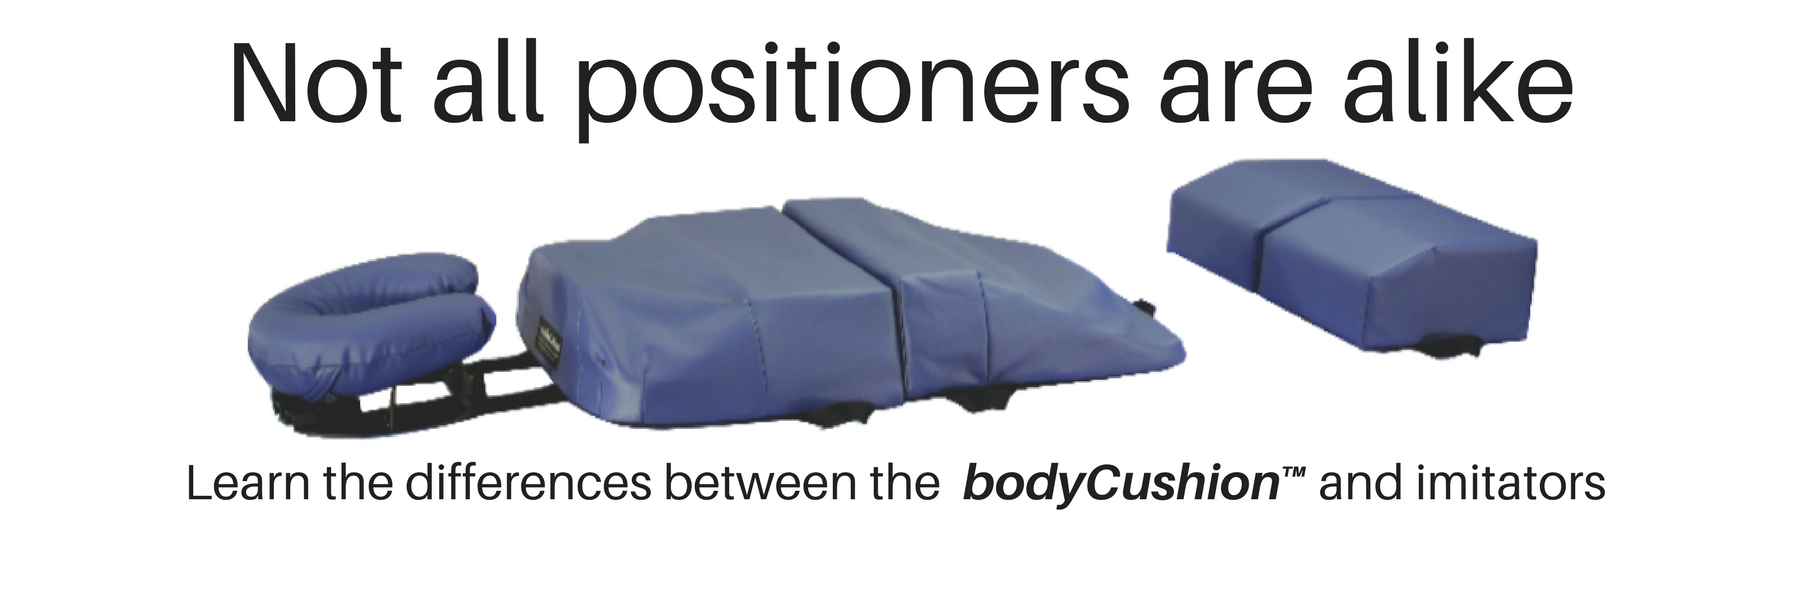 Not all positioners are alike. Learn the differences between the bodyCushion and imitators